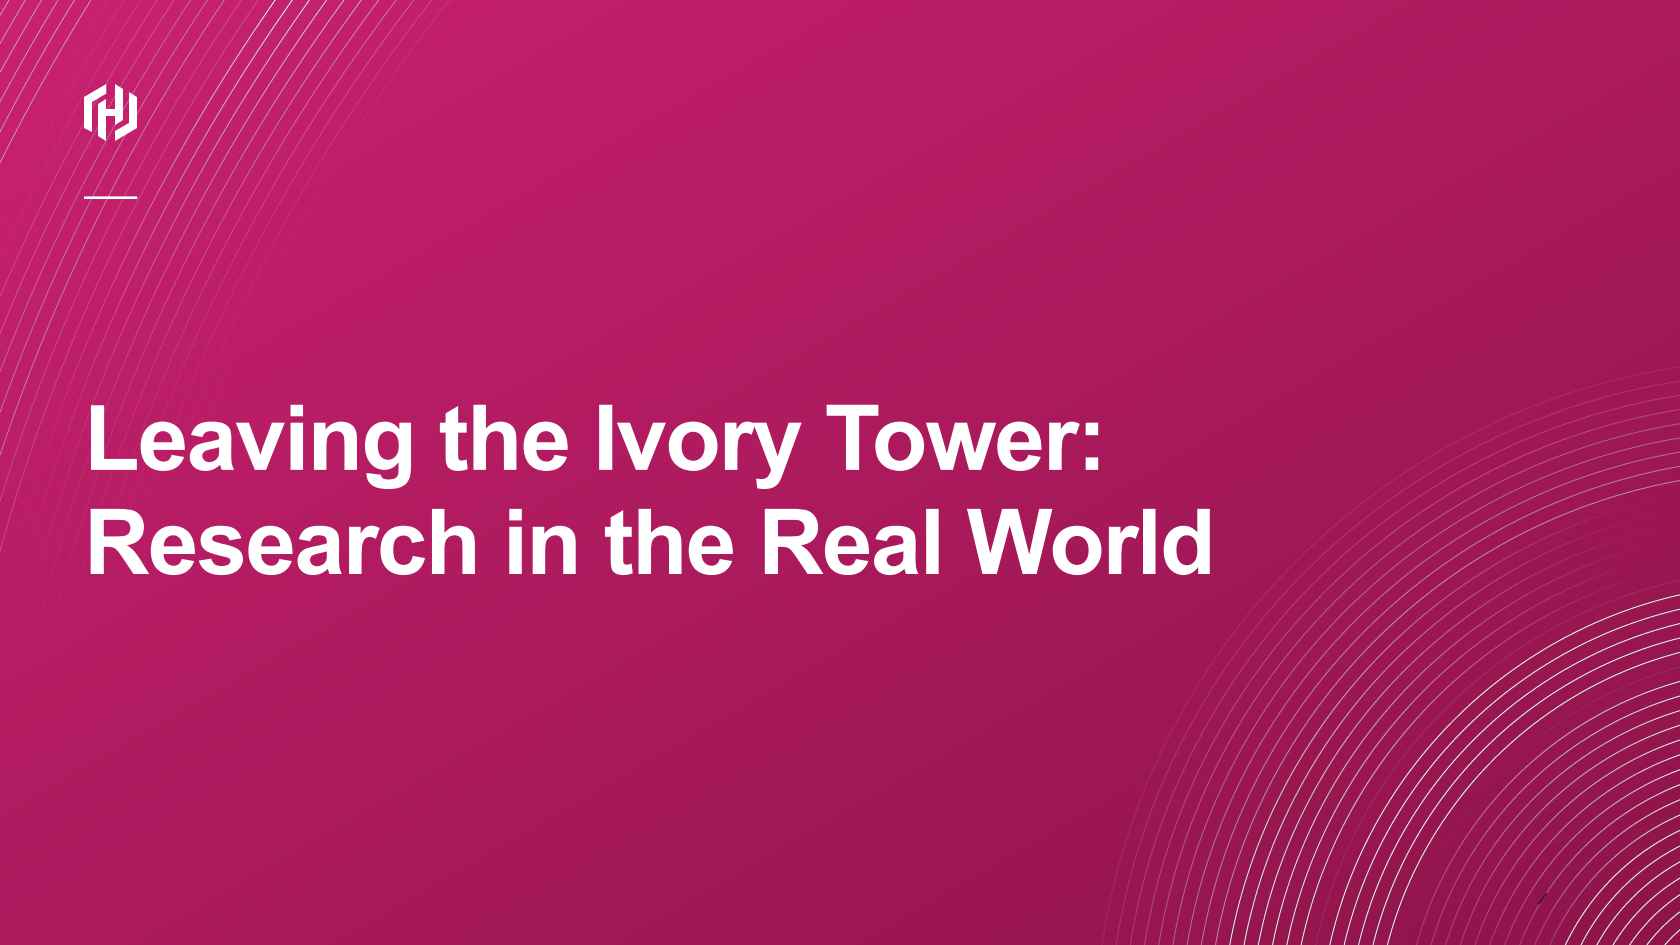 Leaving the Ivory Tower: Research in the Real World